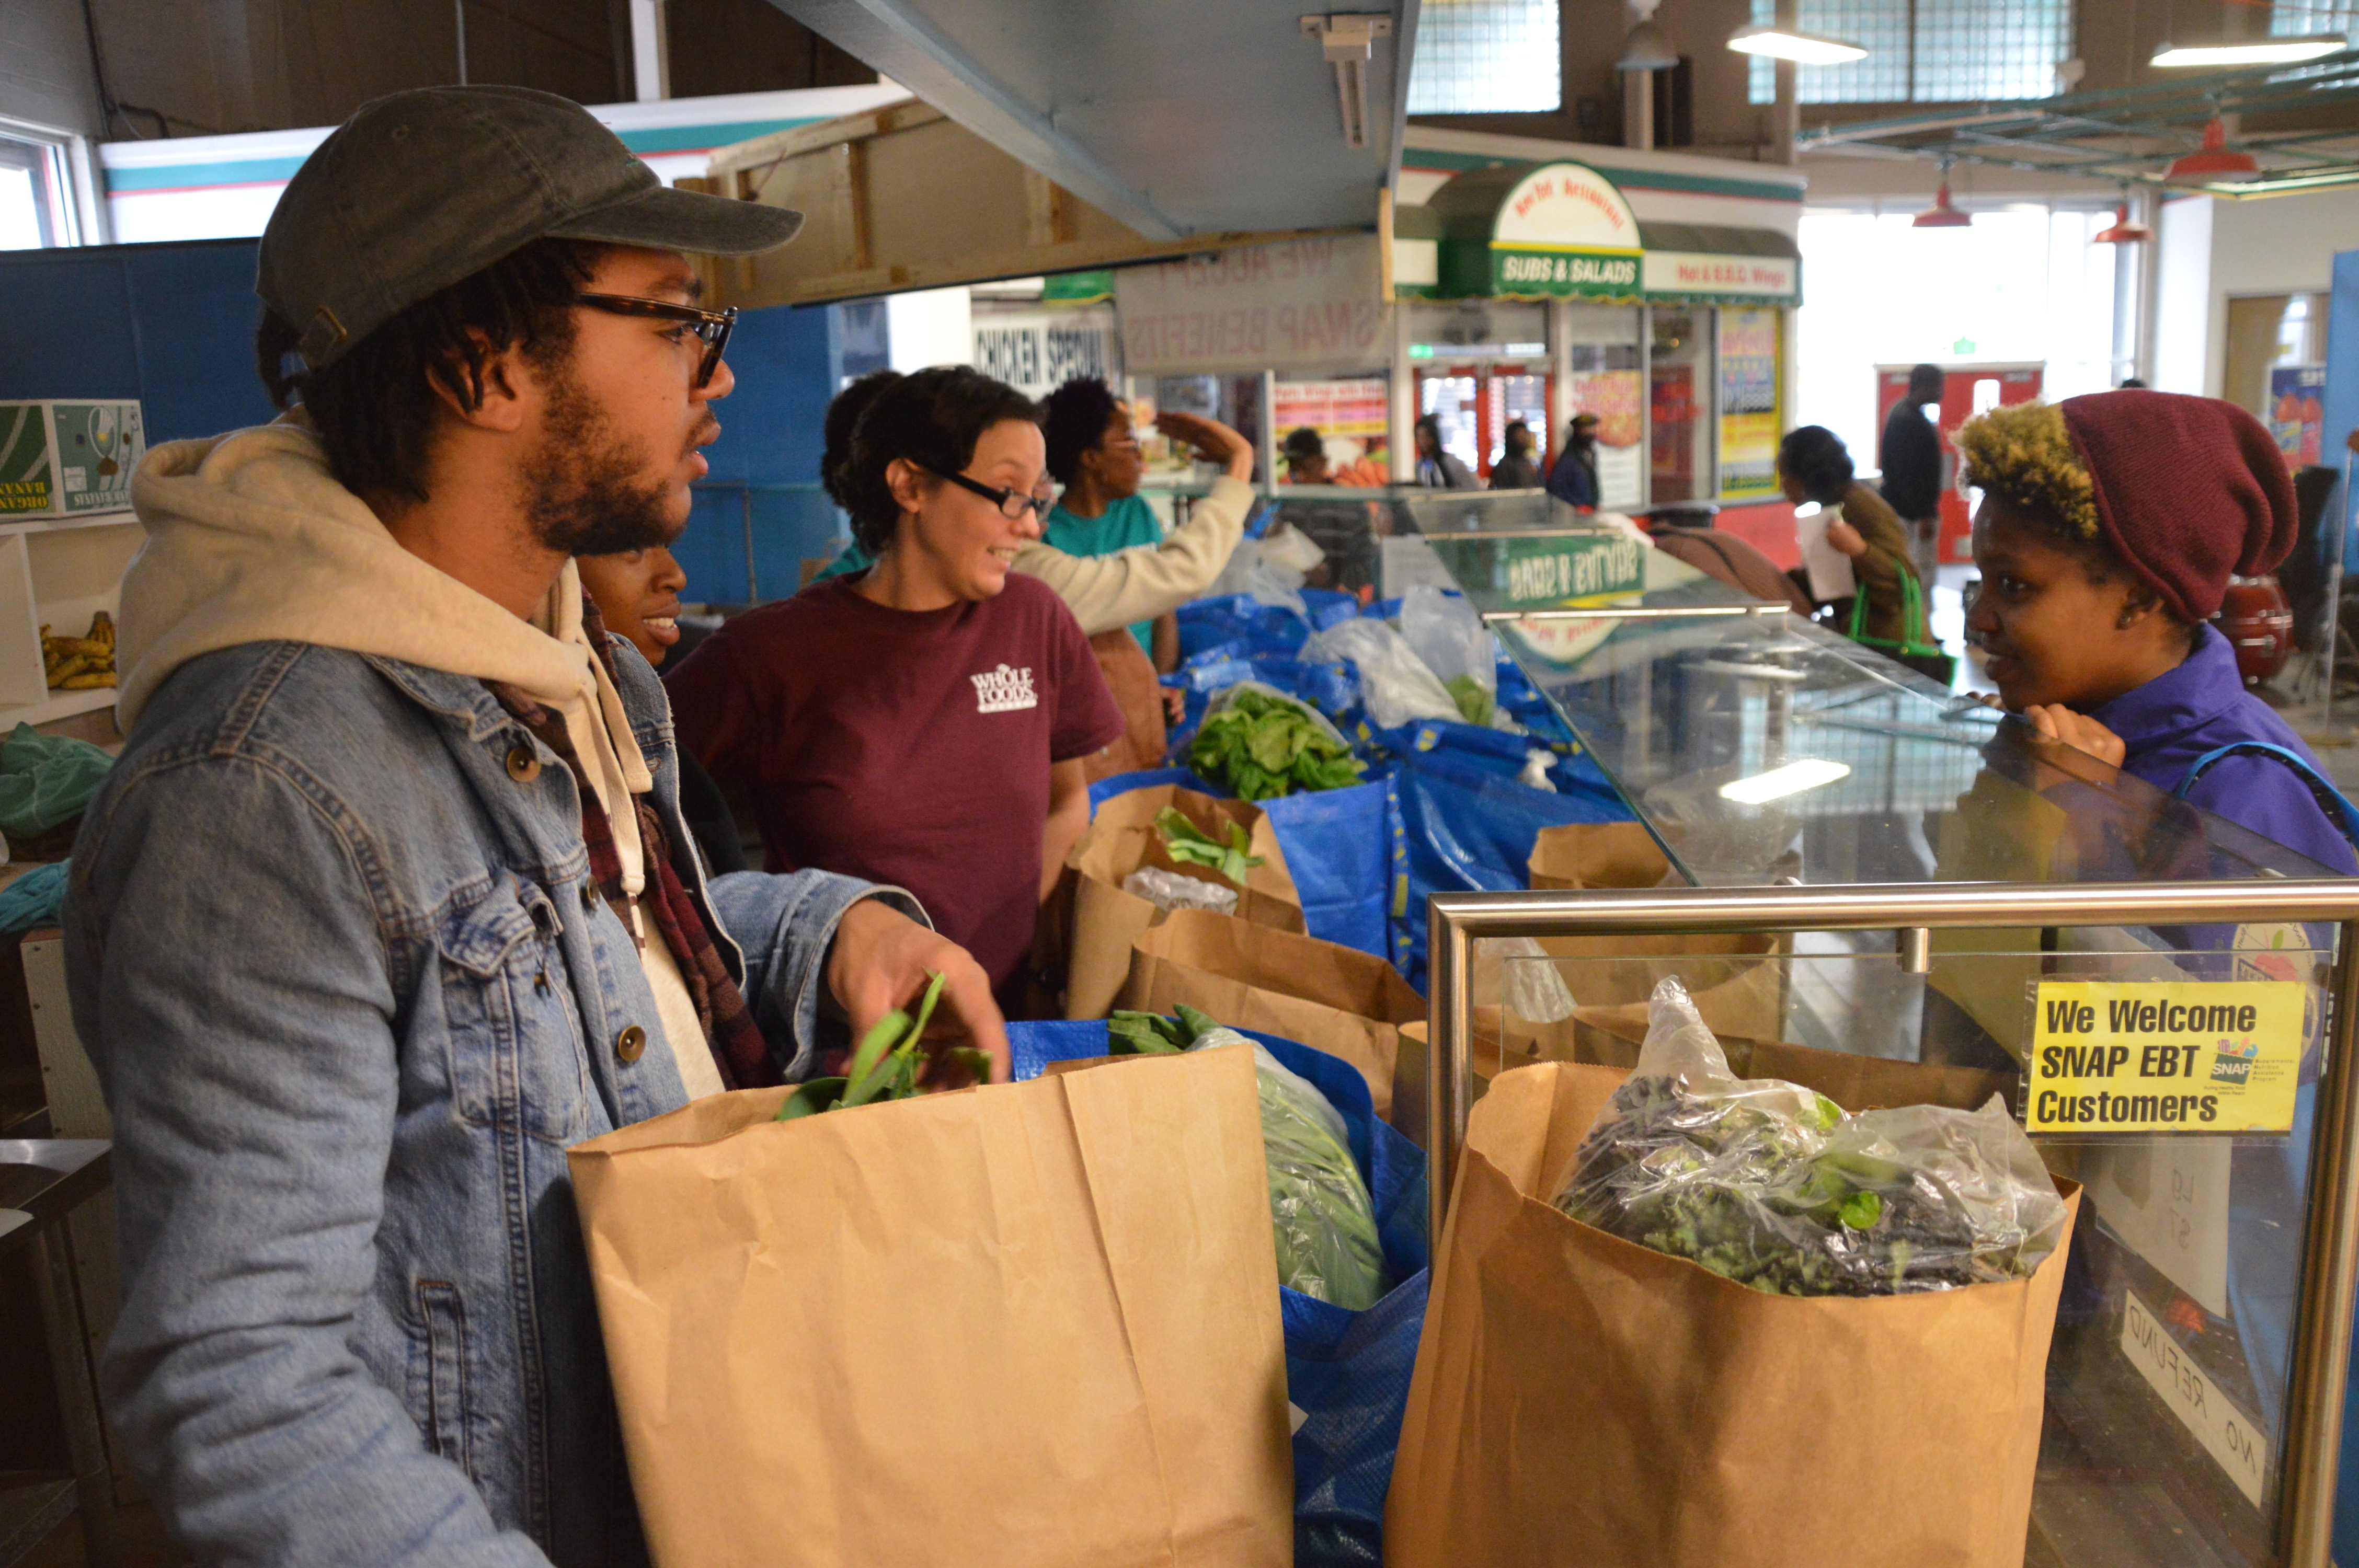 Fresh Beets pop-up tackles food access in West Baltimore one bag at a time